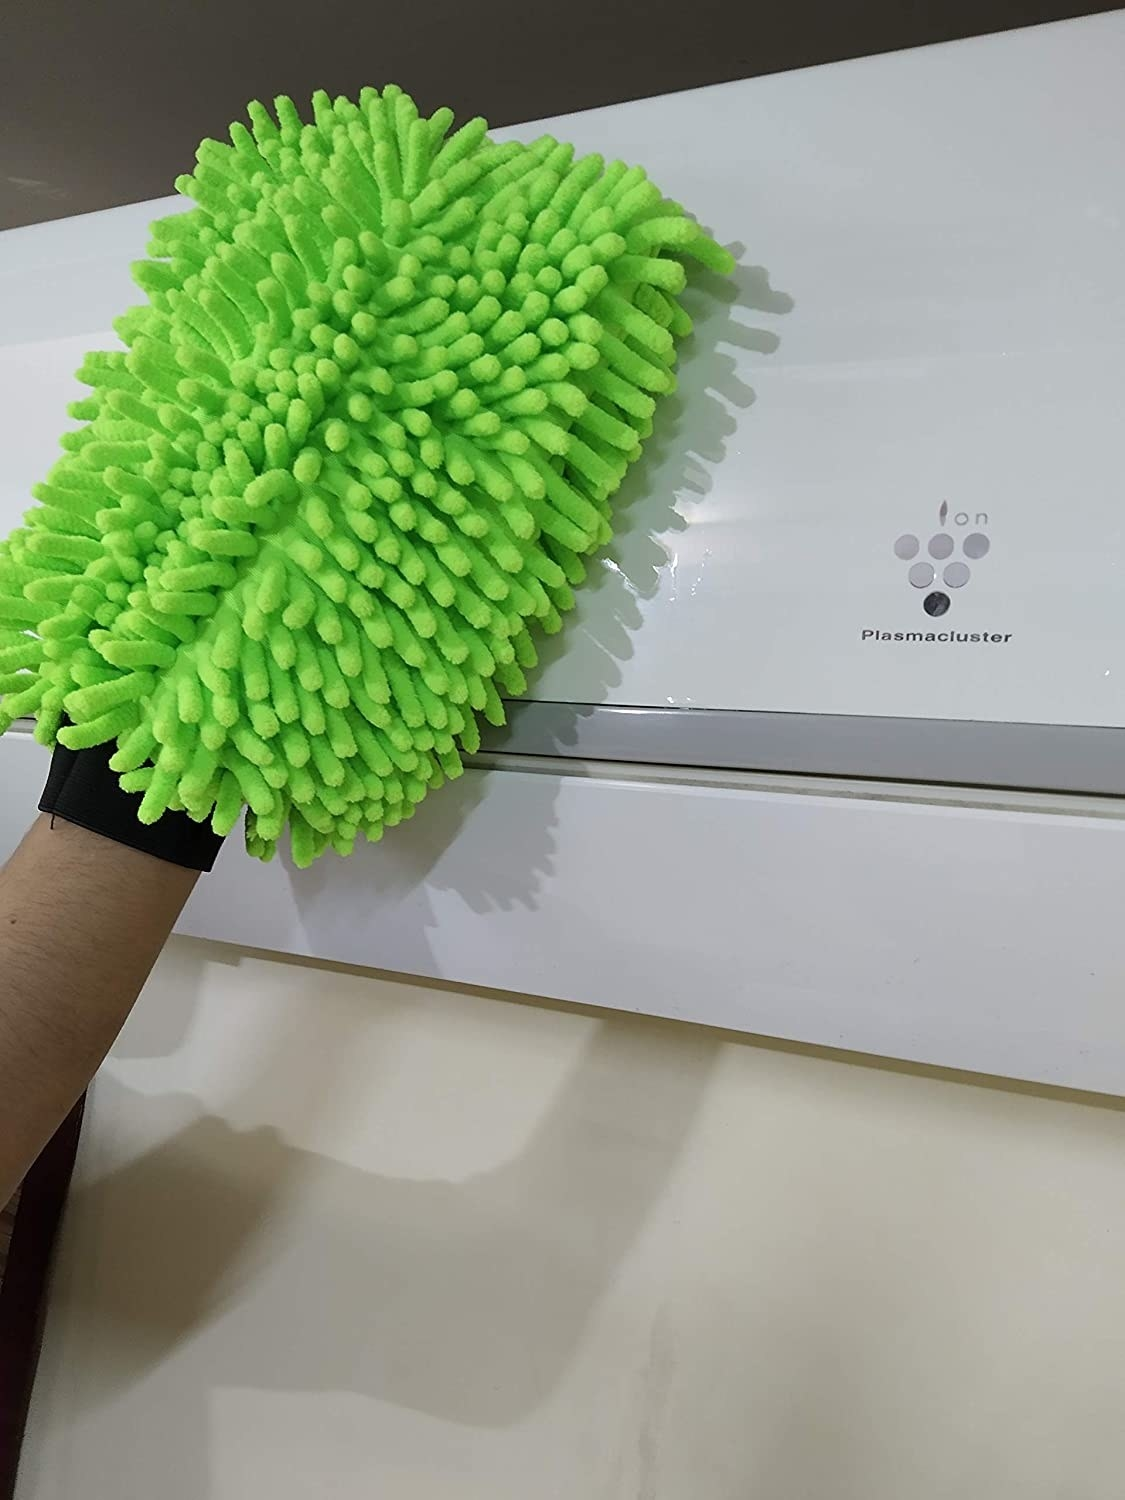 A microfiber cleaning glove